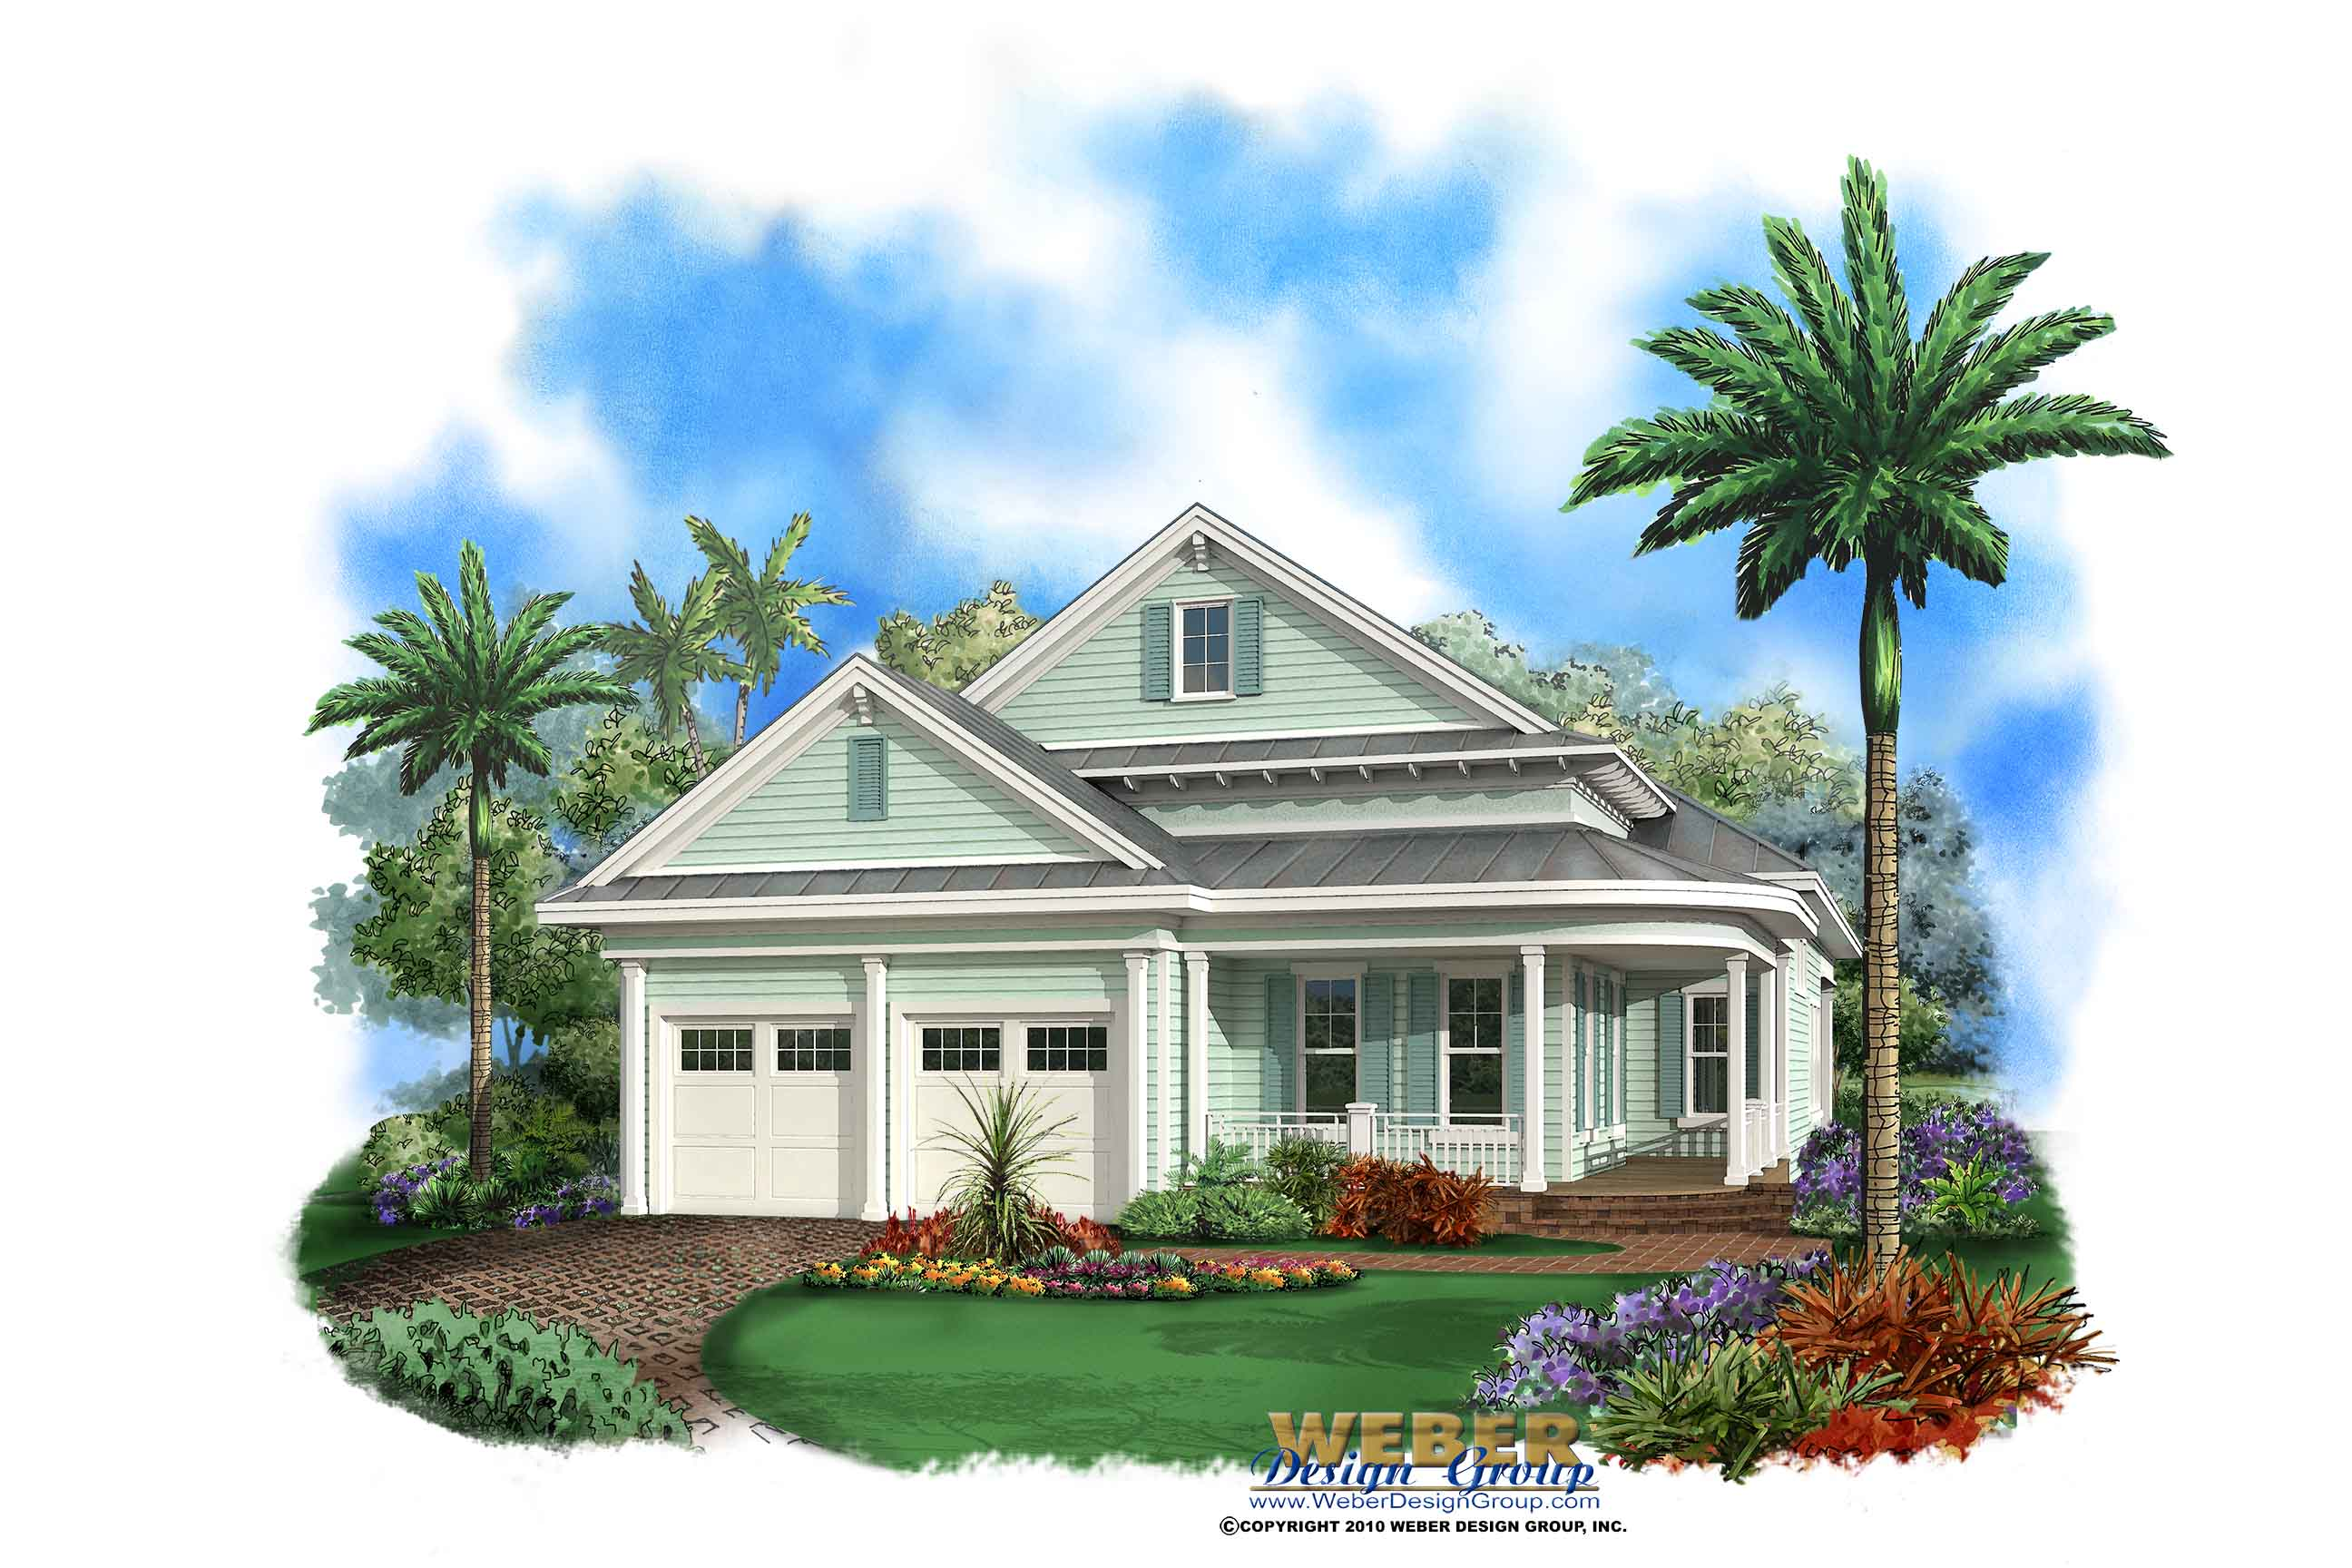 Florida house plan coastal house plan waterfront house for Seaside house plans designs